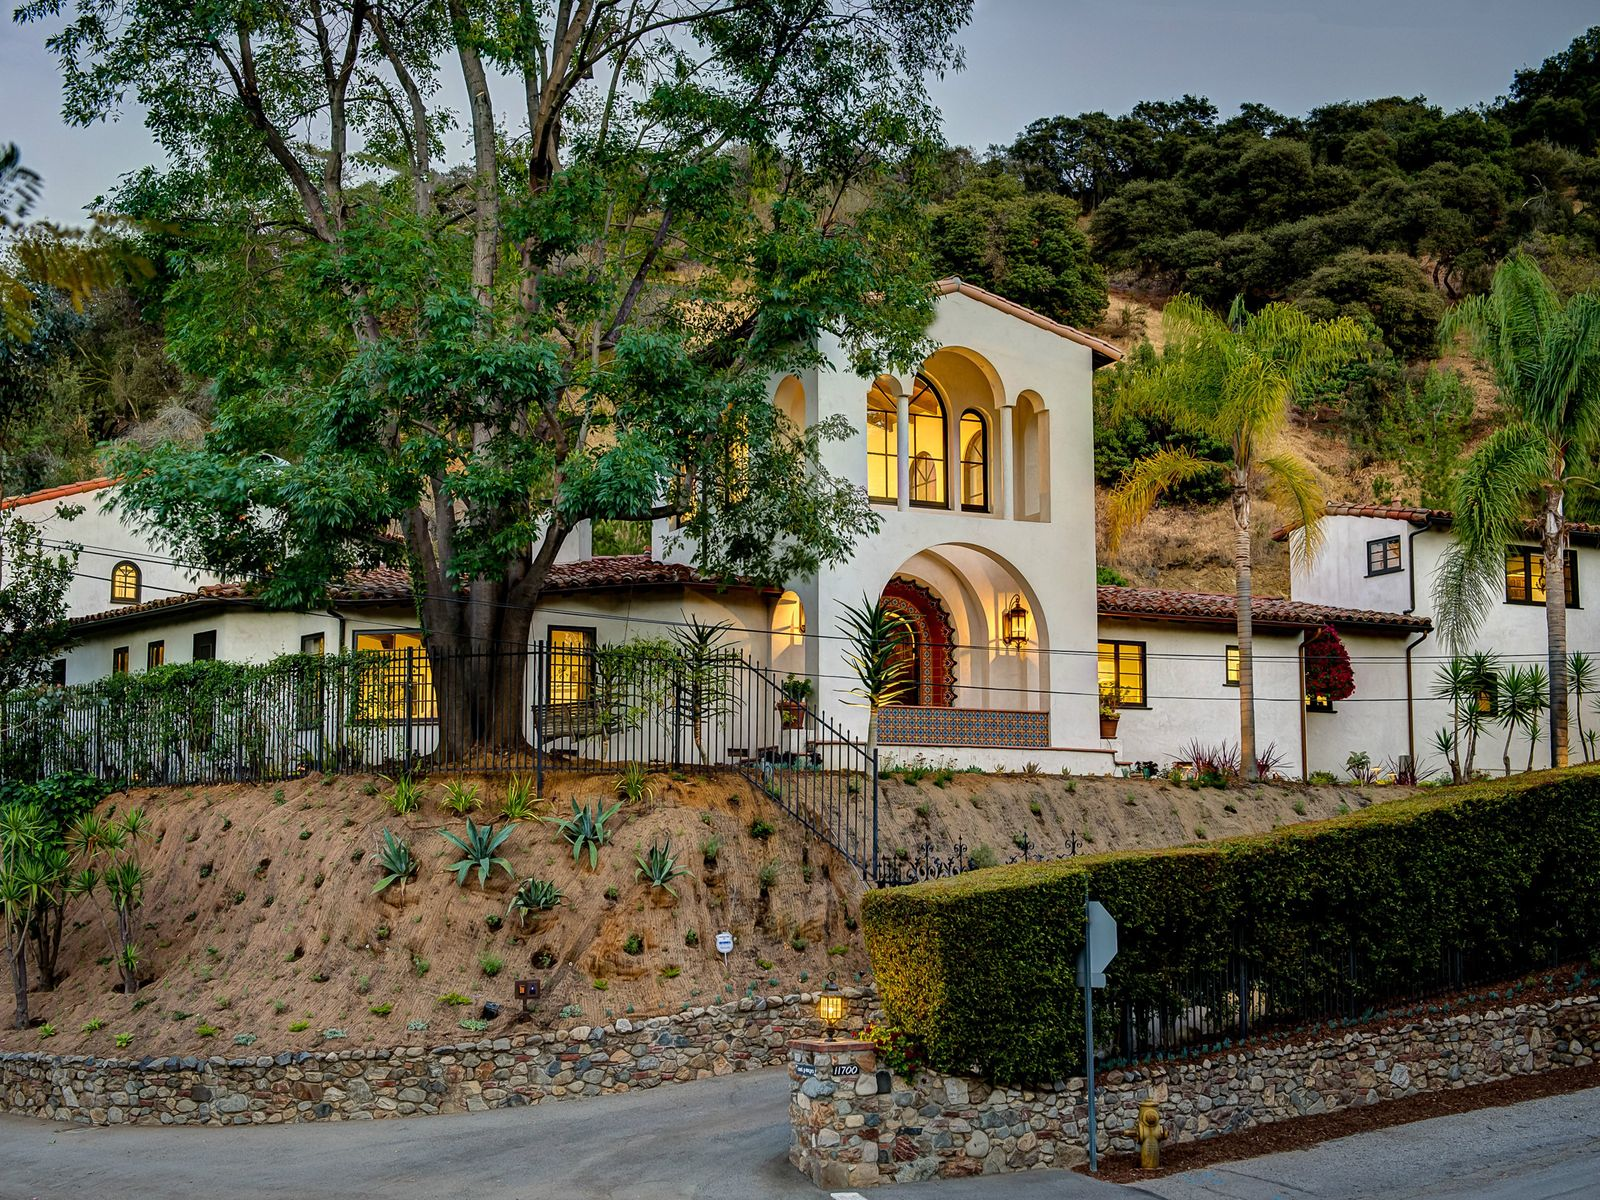 Gated Fryman Estate, Studio City CA Single Family Home - Los Angeles Real Estate